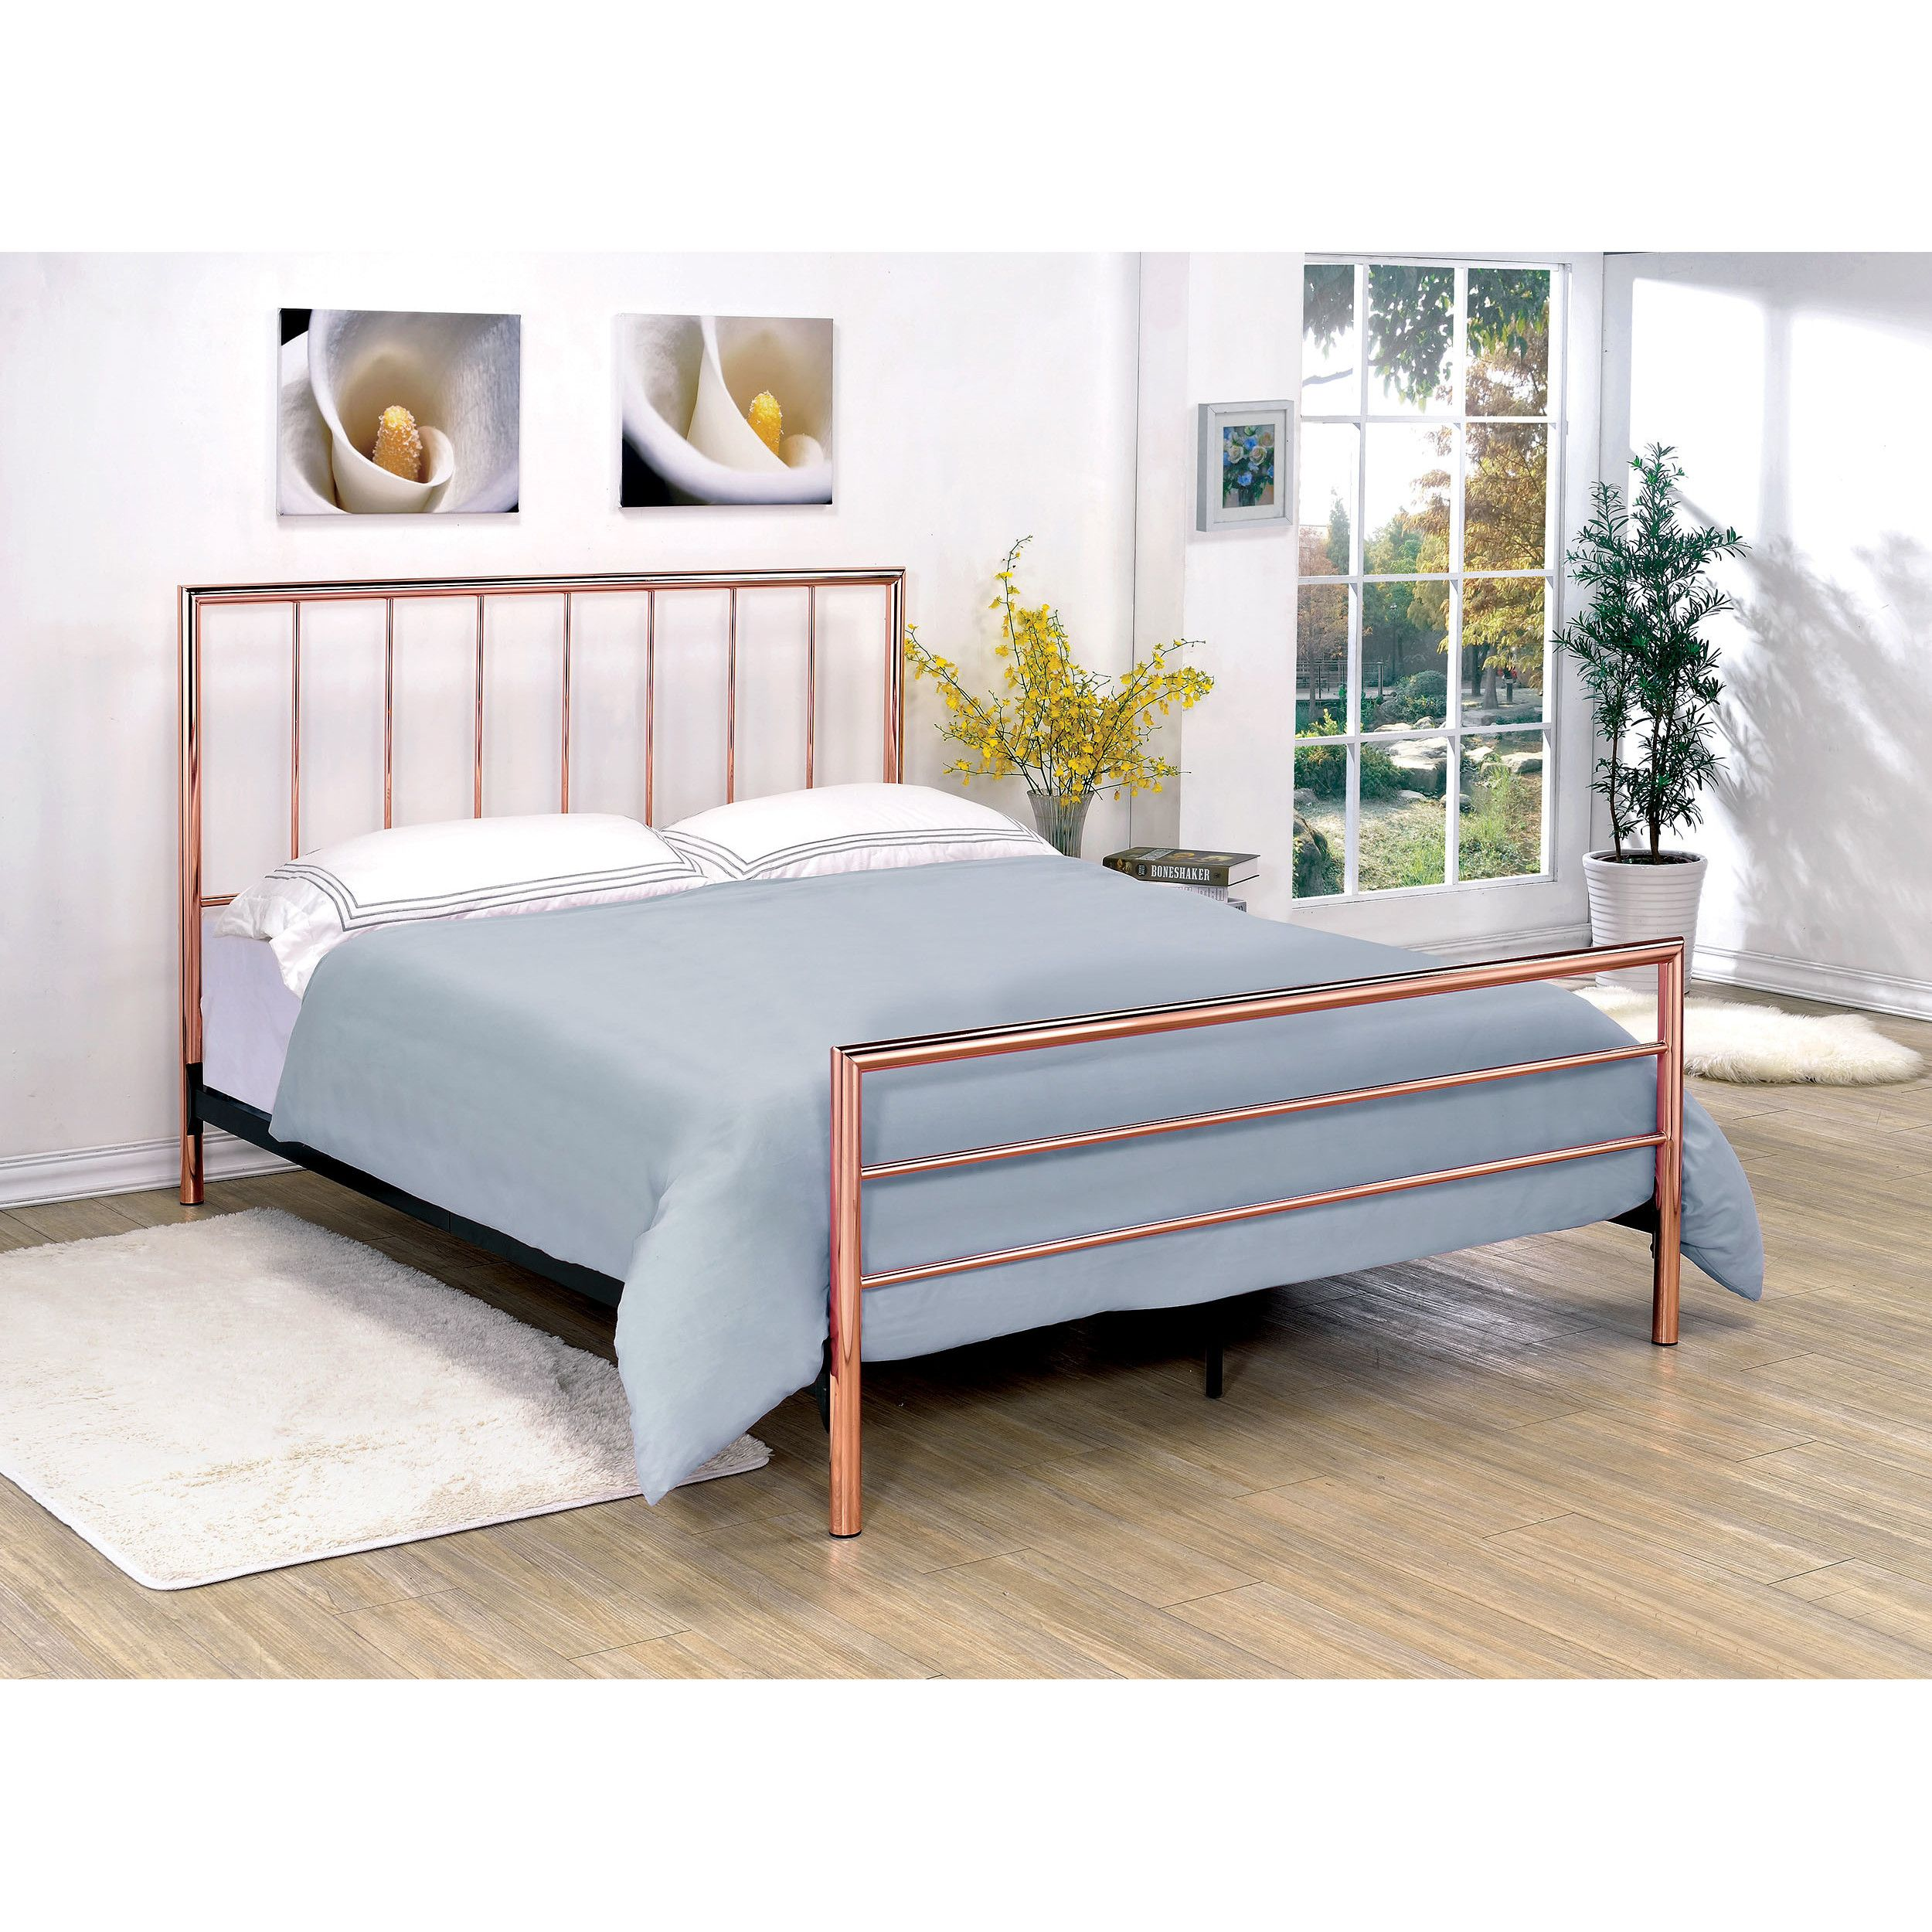 Mercer41 Tatum Panel Bed | Wayfair.ca | Namaste In Bed | Pinterest